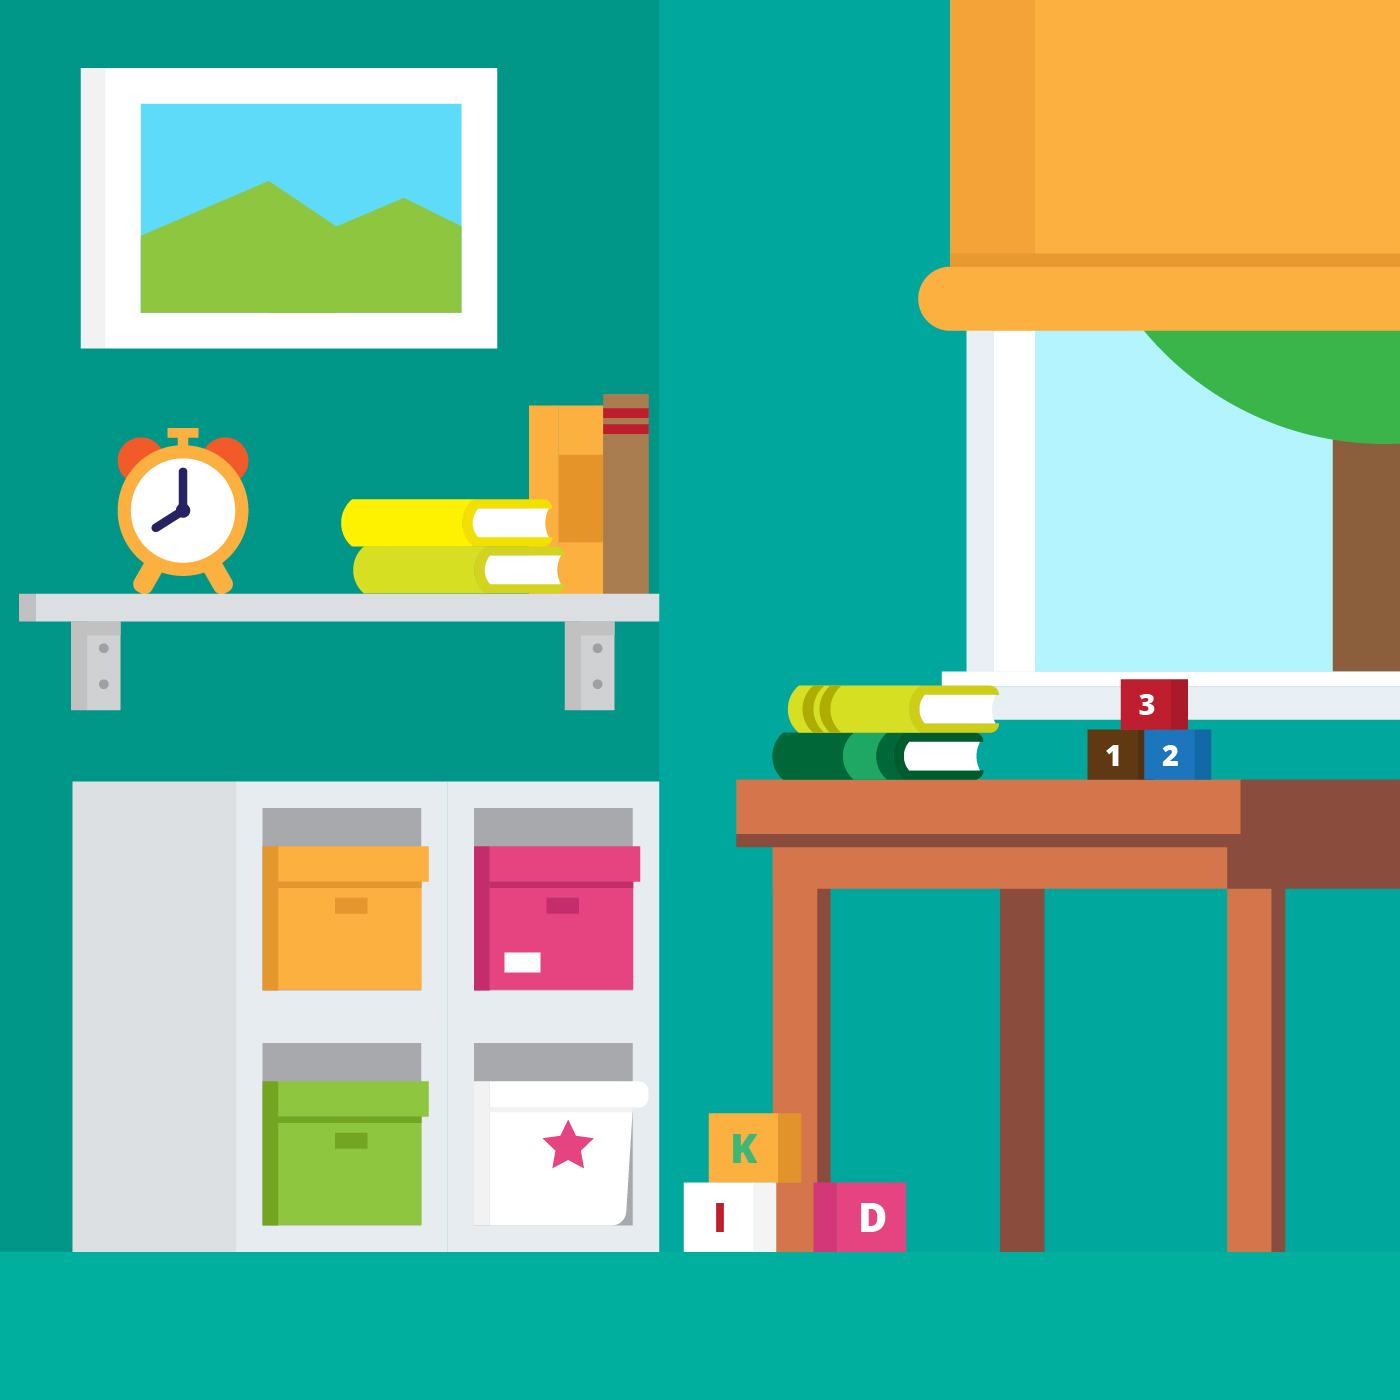 Kids Room Decoration Space Theme Vector Illustration: Kids Room Interior Vector Illustration